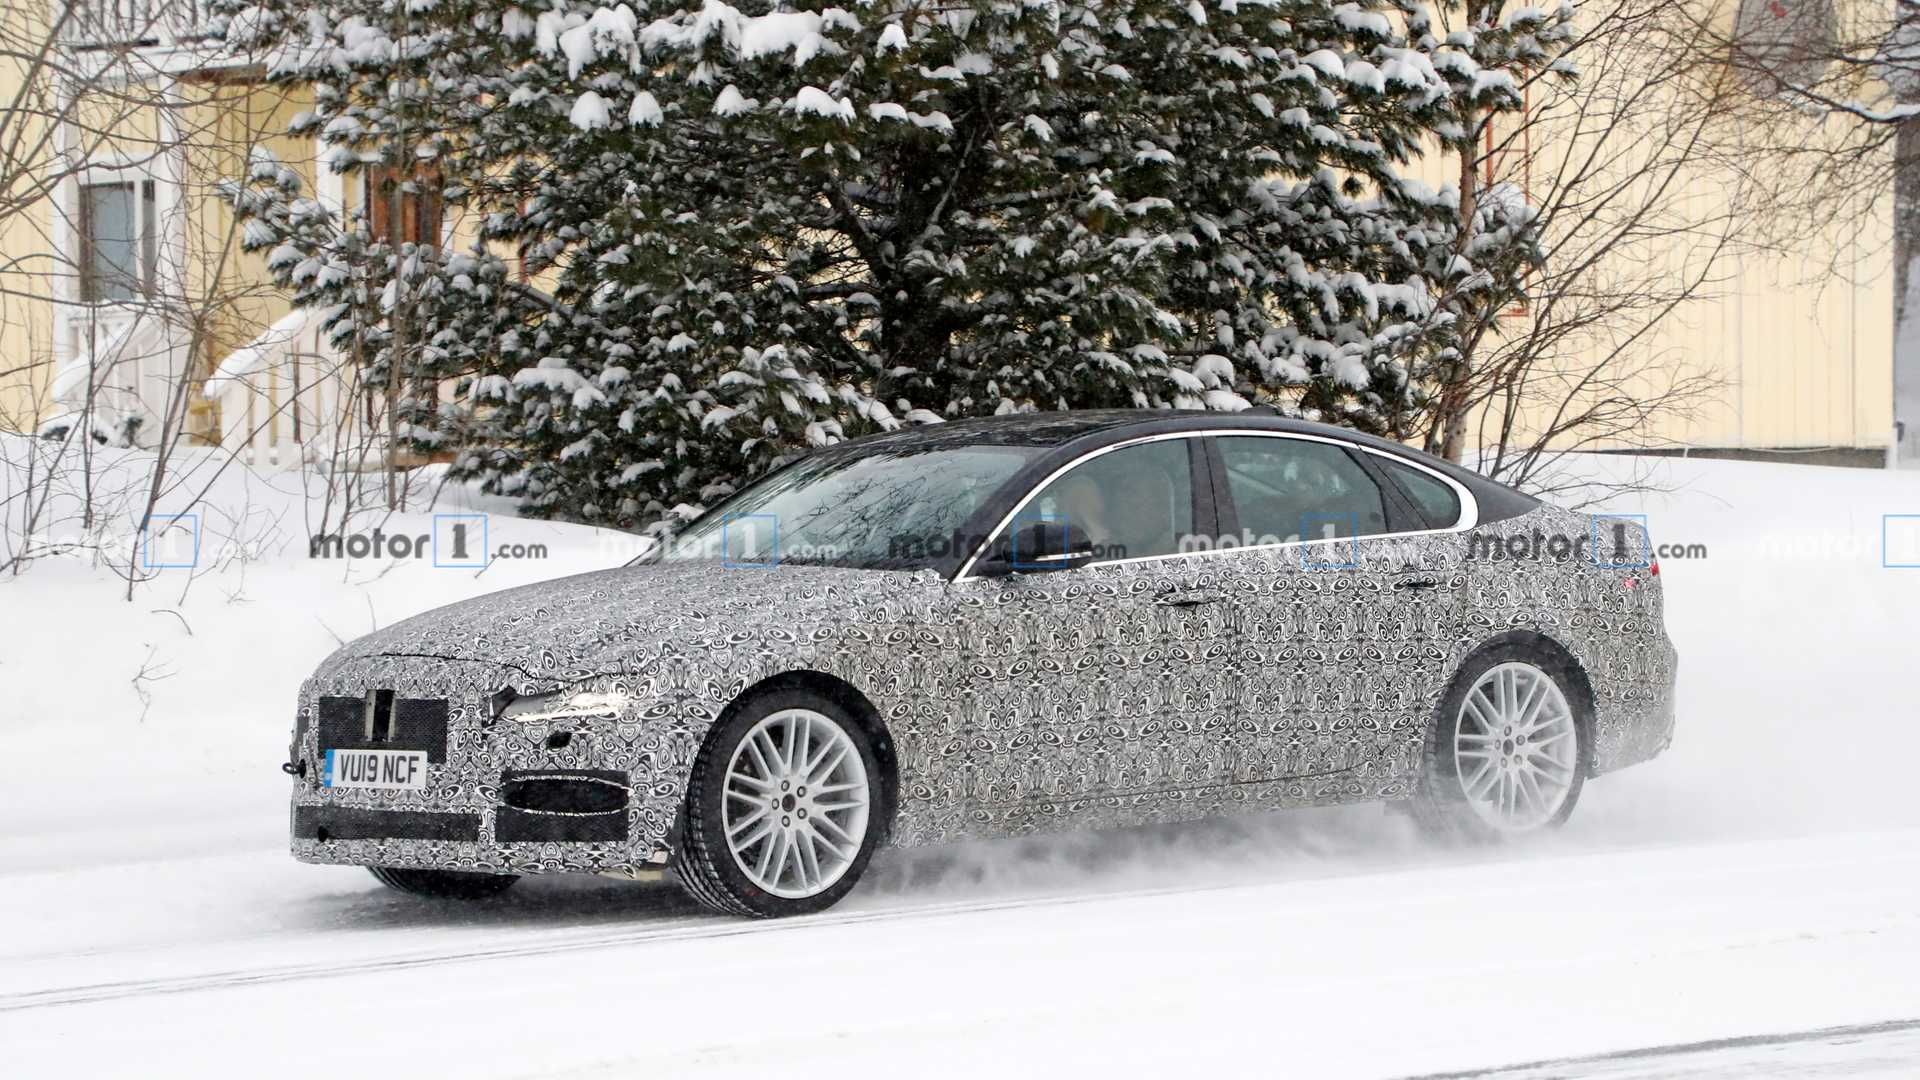 2021 jaguar xf facelift spied up close hiding updated design